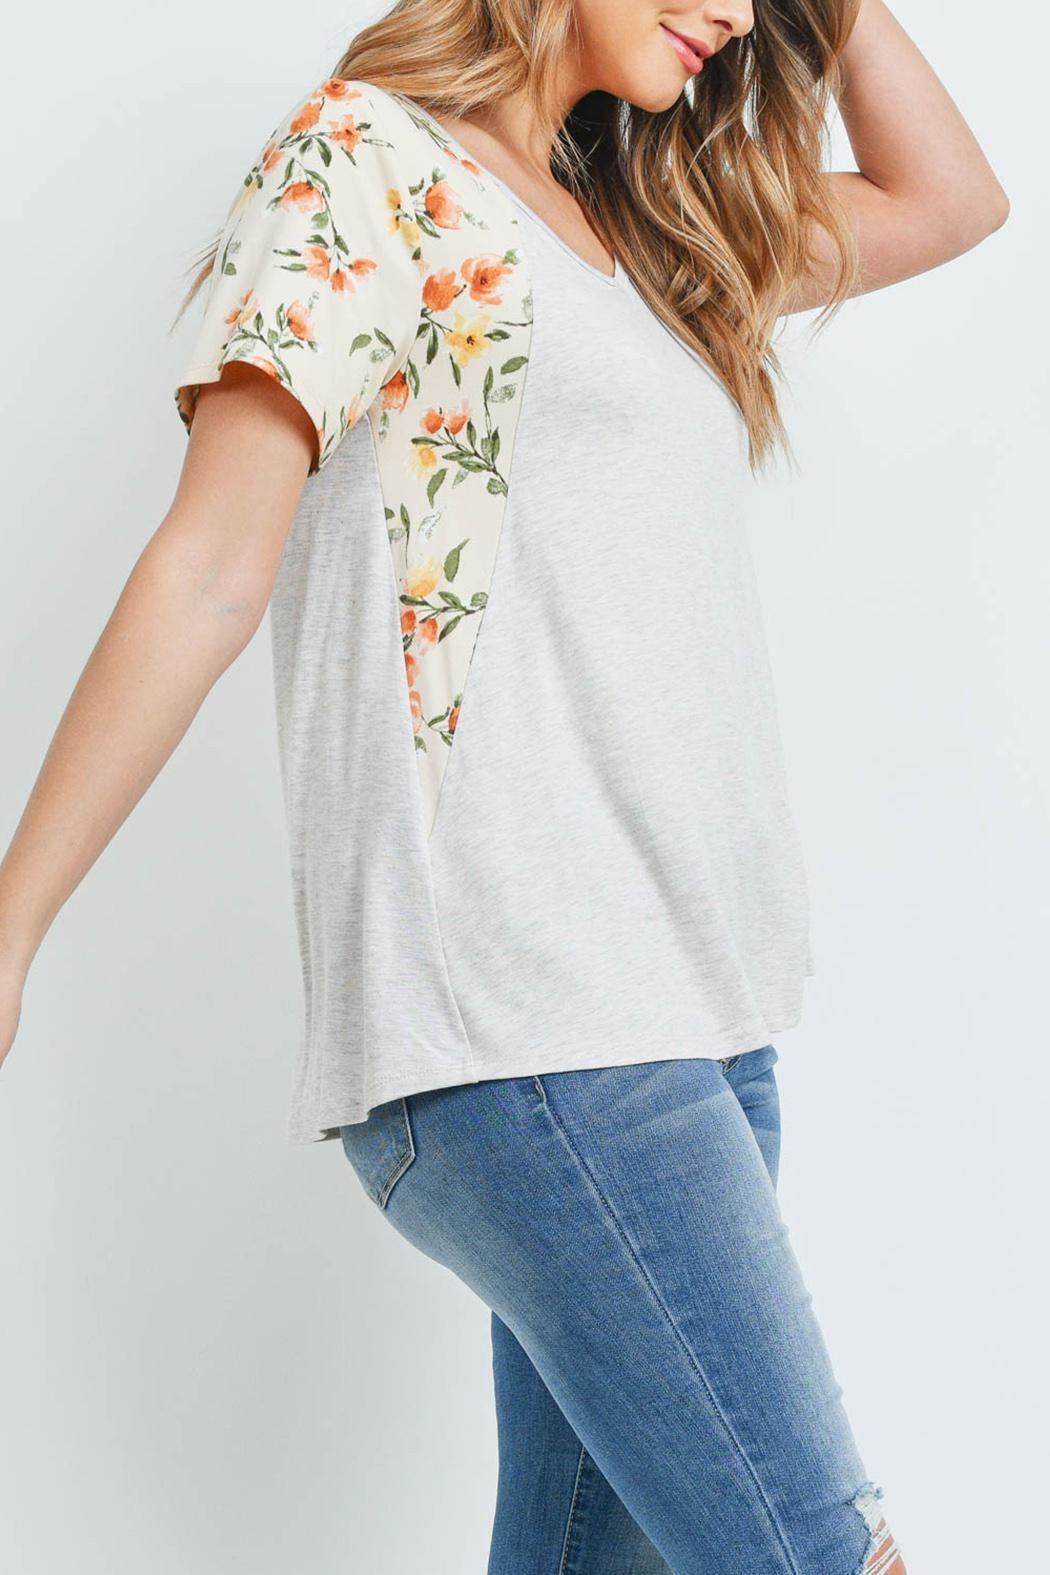 Riah Fashion Floral-Contrast-Two-Toned-V-Neck-Top - Back Cropped Image